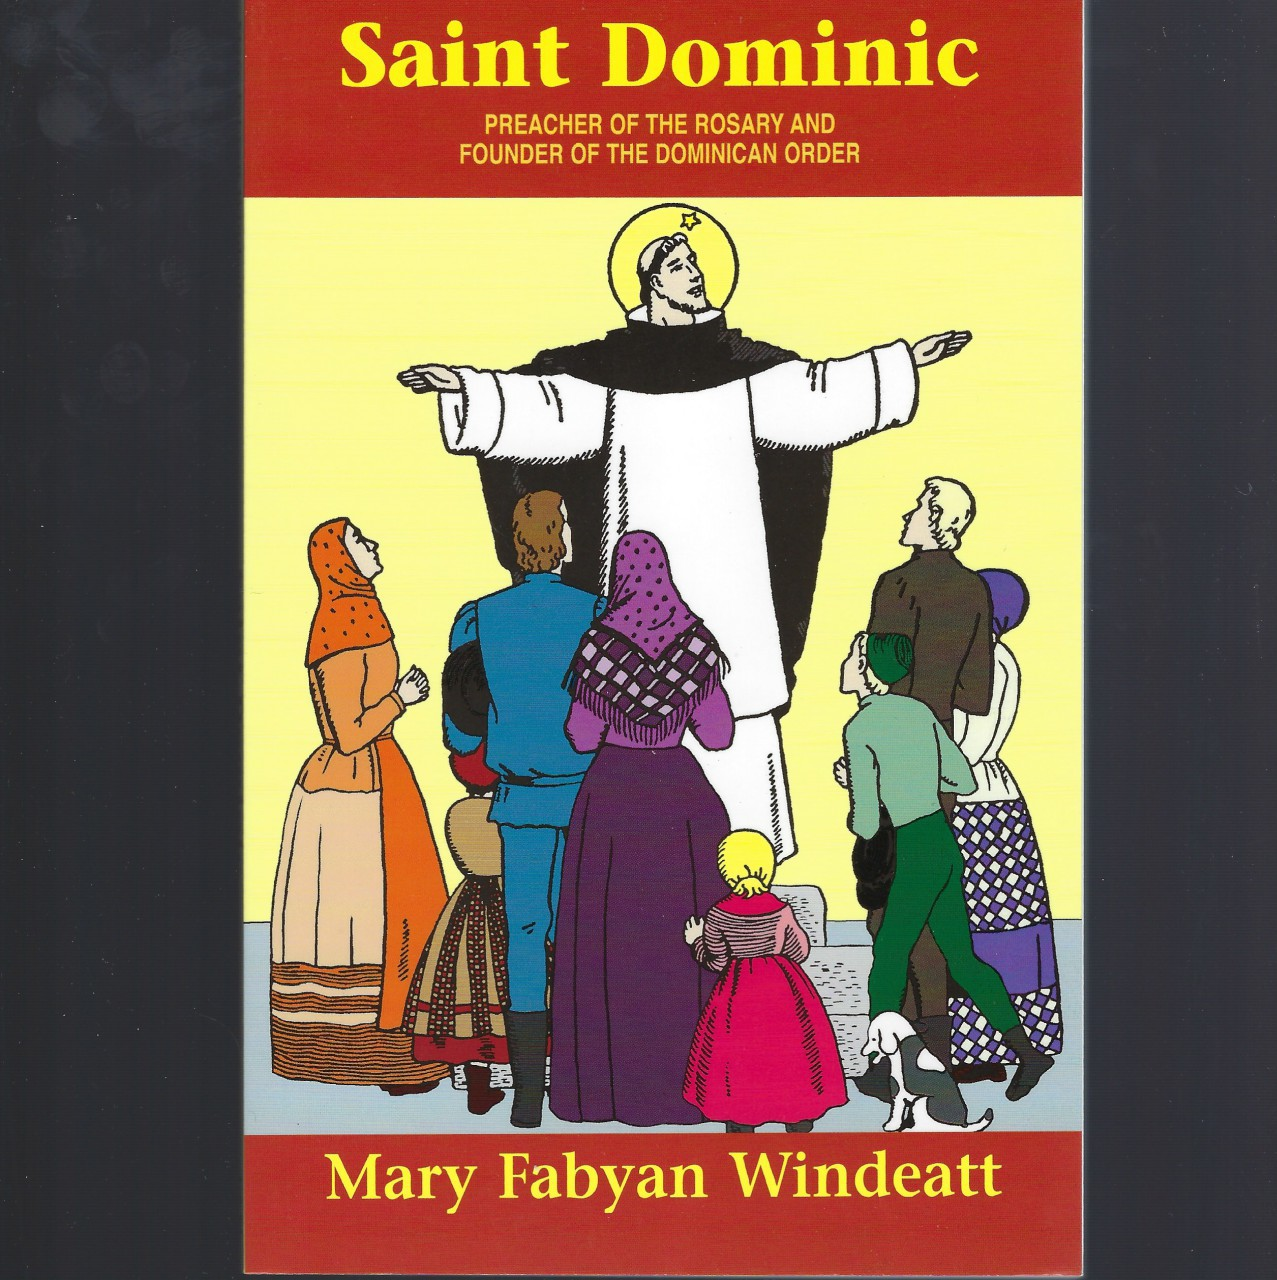 Saint Dominic Preacher of the Rosary and Founder of the Dominican Order, Mary Fabyan Windeatt